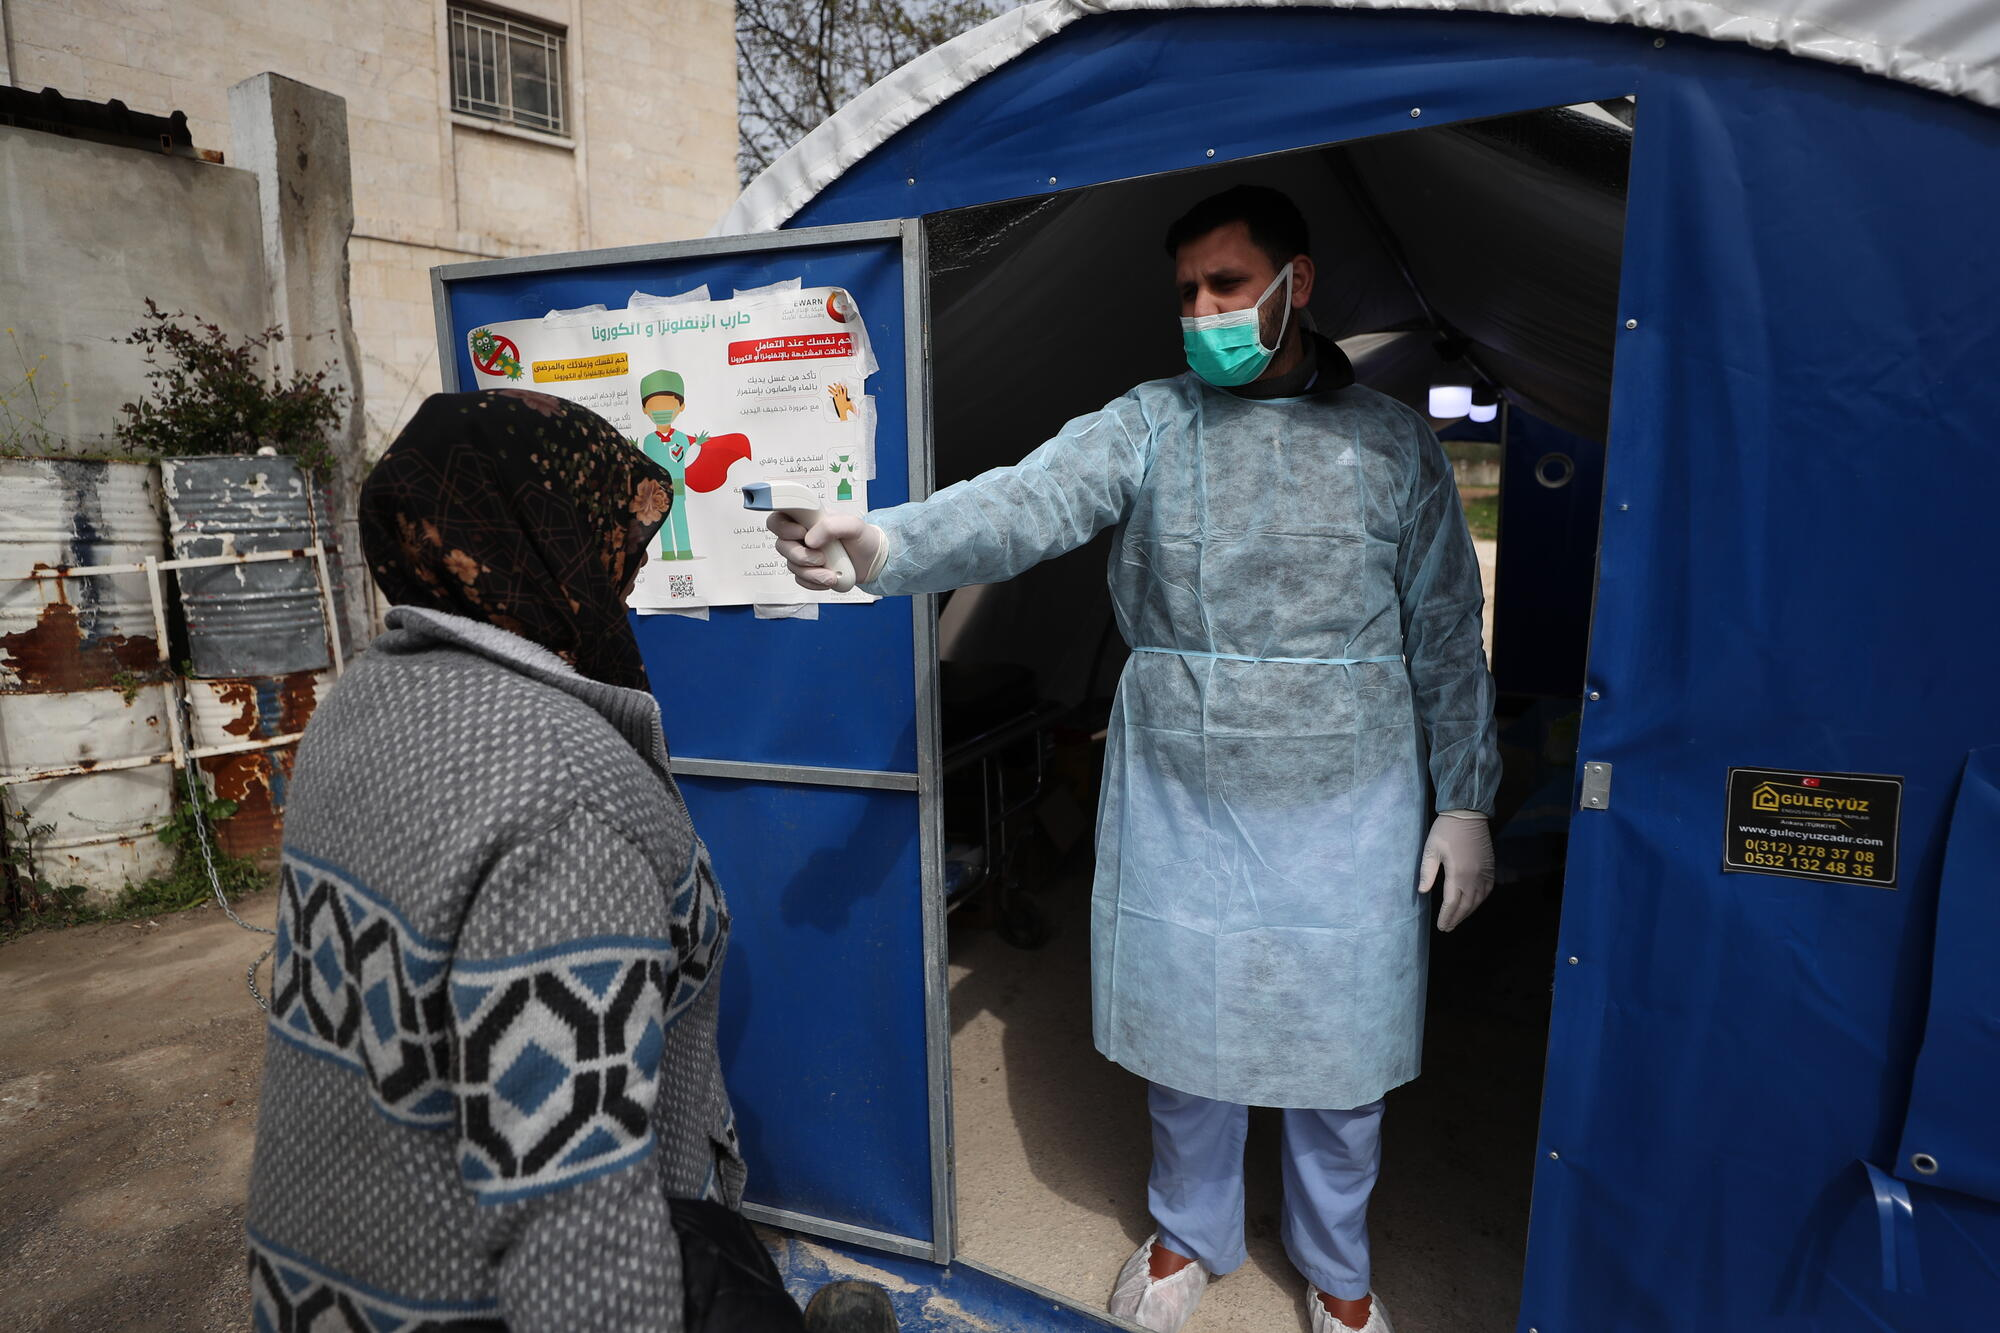 A doctor checks a patient's temperature outside an MSF-supported hospital in northwest Syria